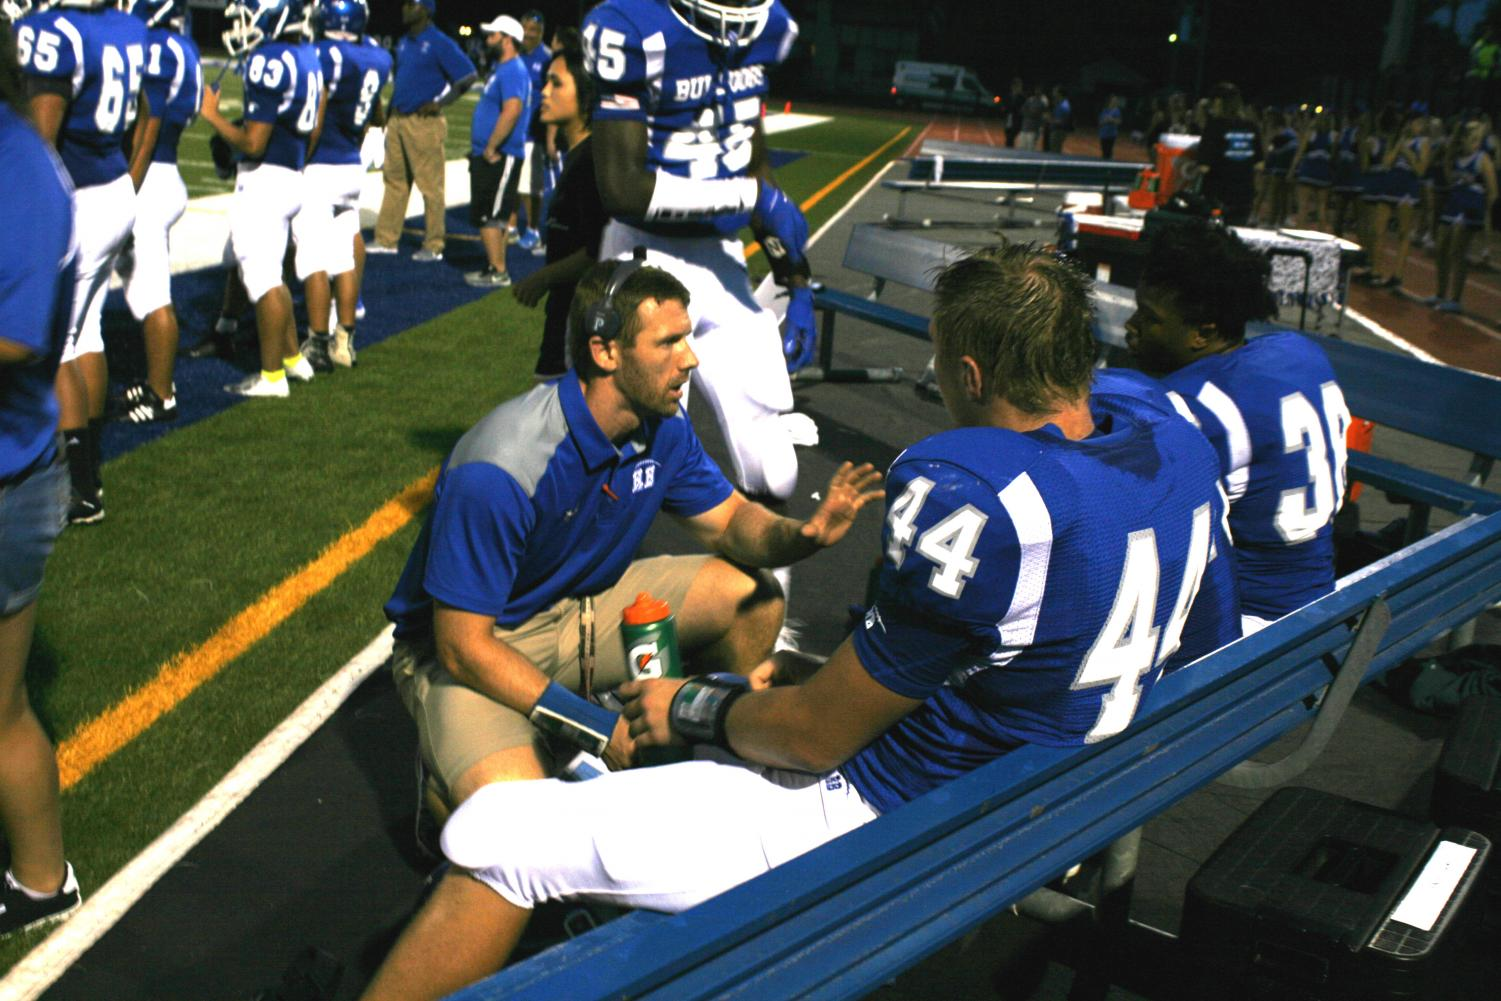 Coach William Duffy talking to players on sideline